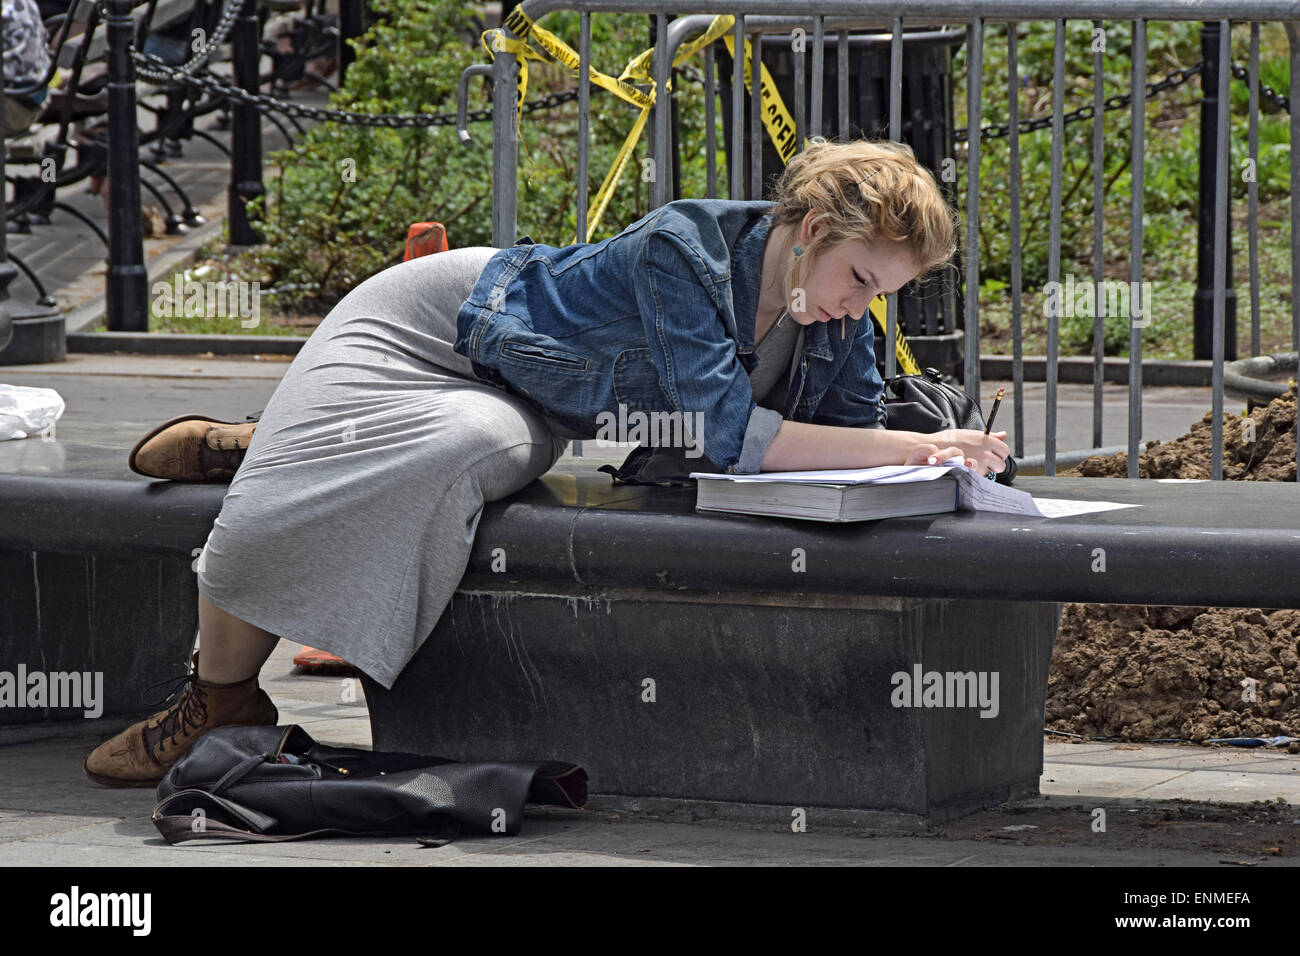 A pretty college student studying for exams outdoors in Washington Square Park in Greenwich Village, New York City - Stock Image